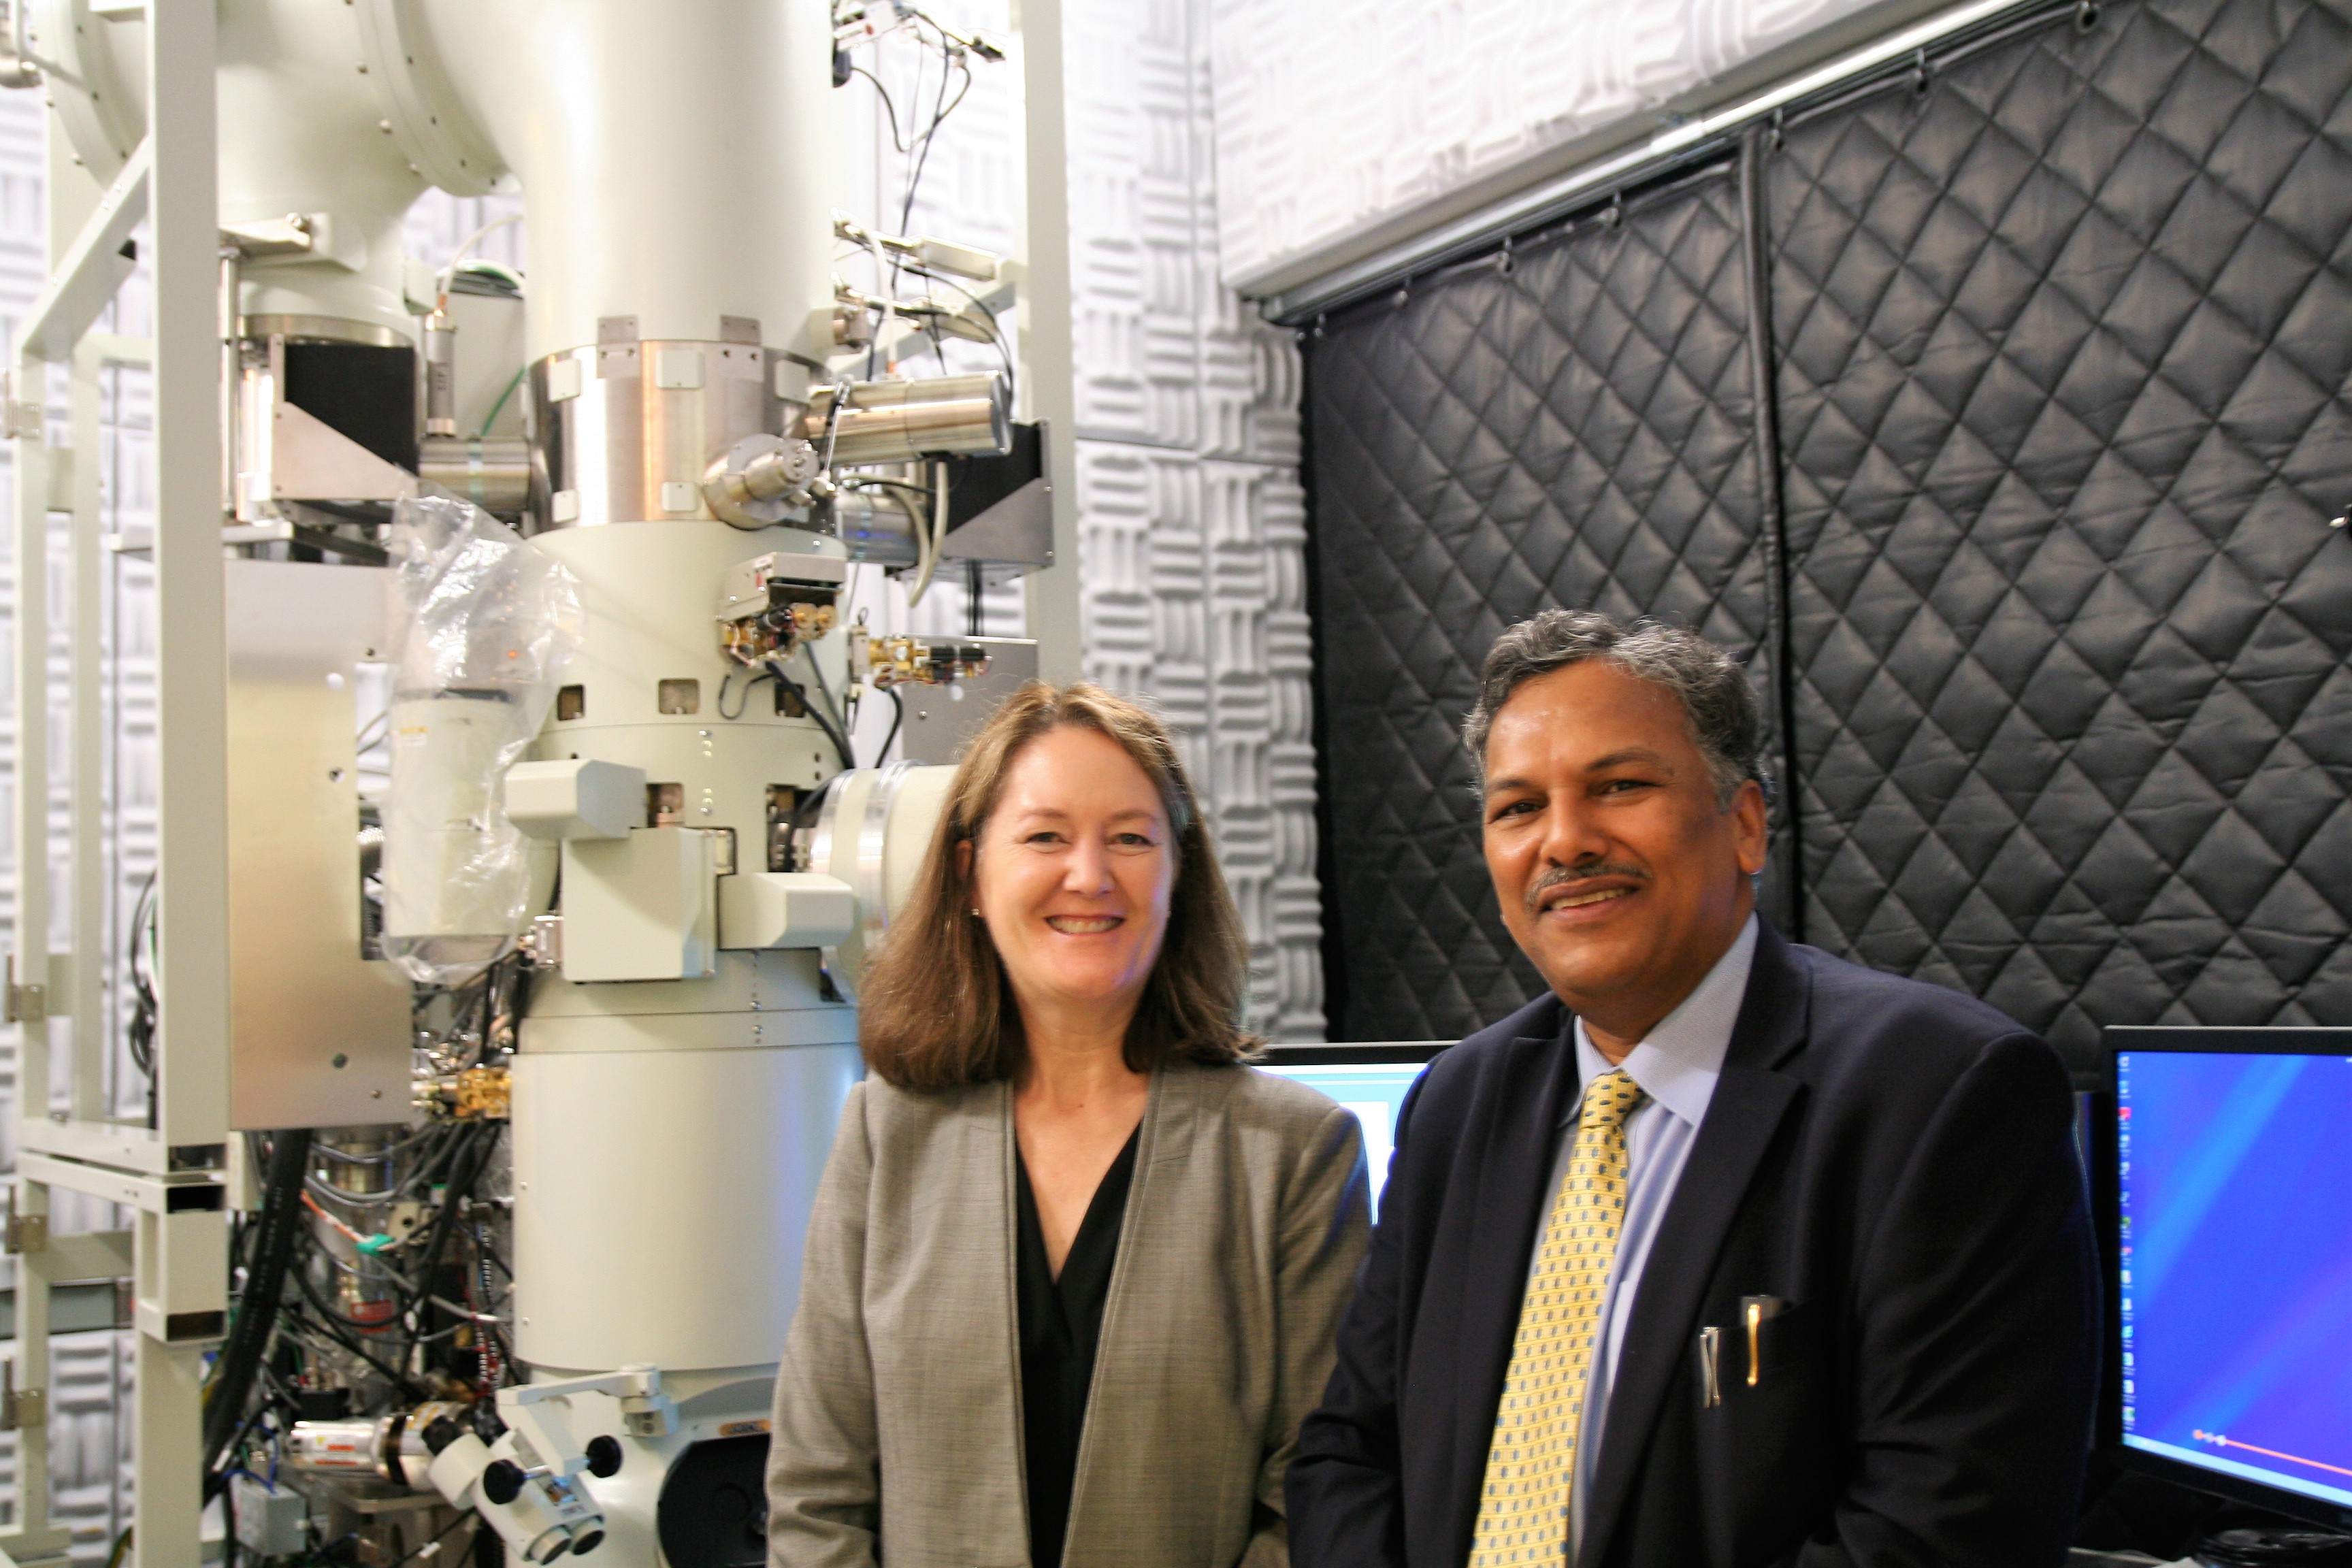 Prof. Dravid and Dr. Benson Tolle pose for photo.